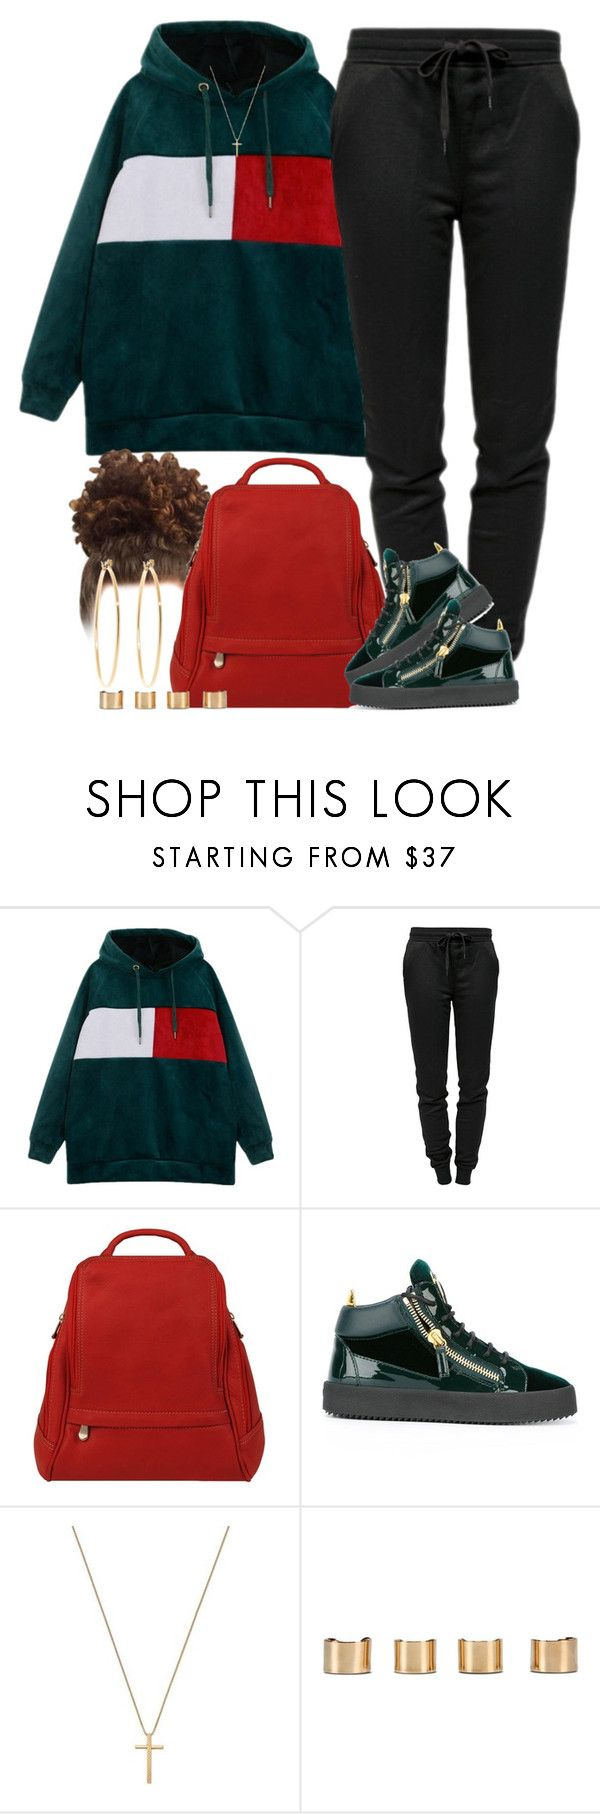 """""""👩🏽🏫"""" by livelifefreelyy ❤ liked on Polyvore featuring T By Alexander Wang, Le Donne, Giuseppe Zanotti, Gucci, Maison Margiela and Brooks Brothers"""